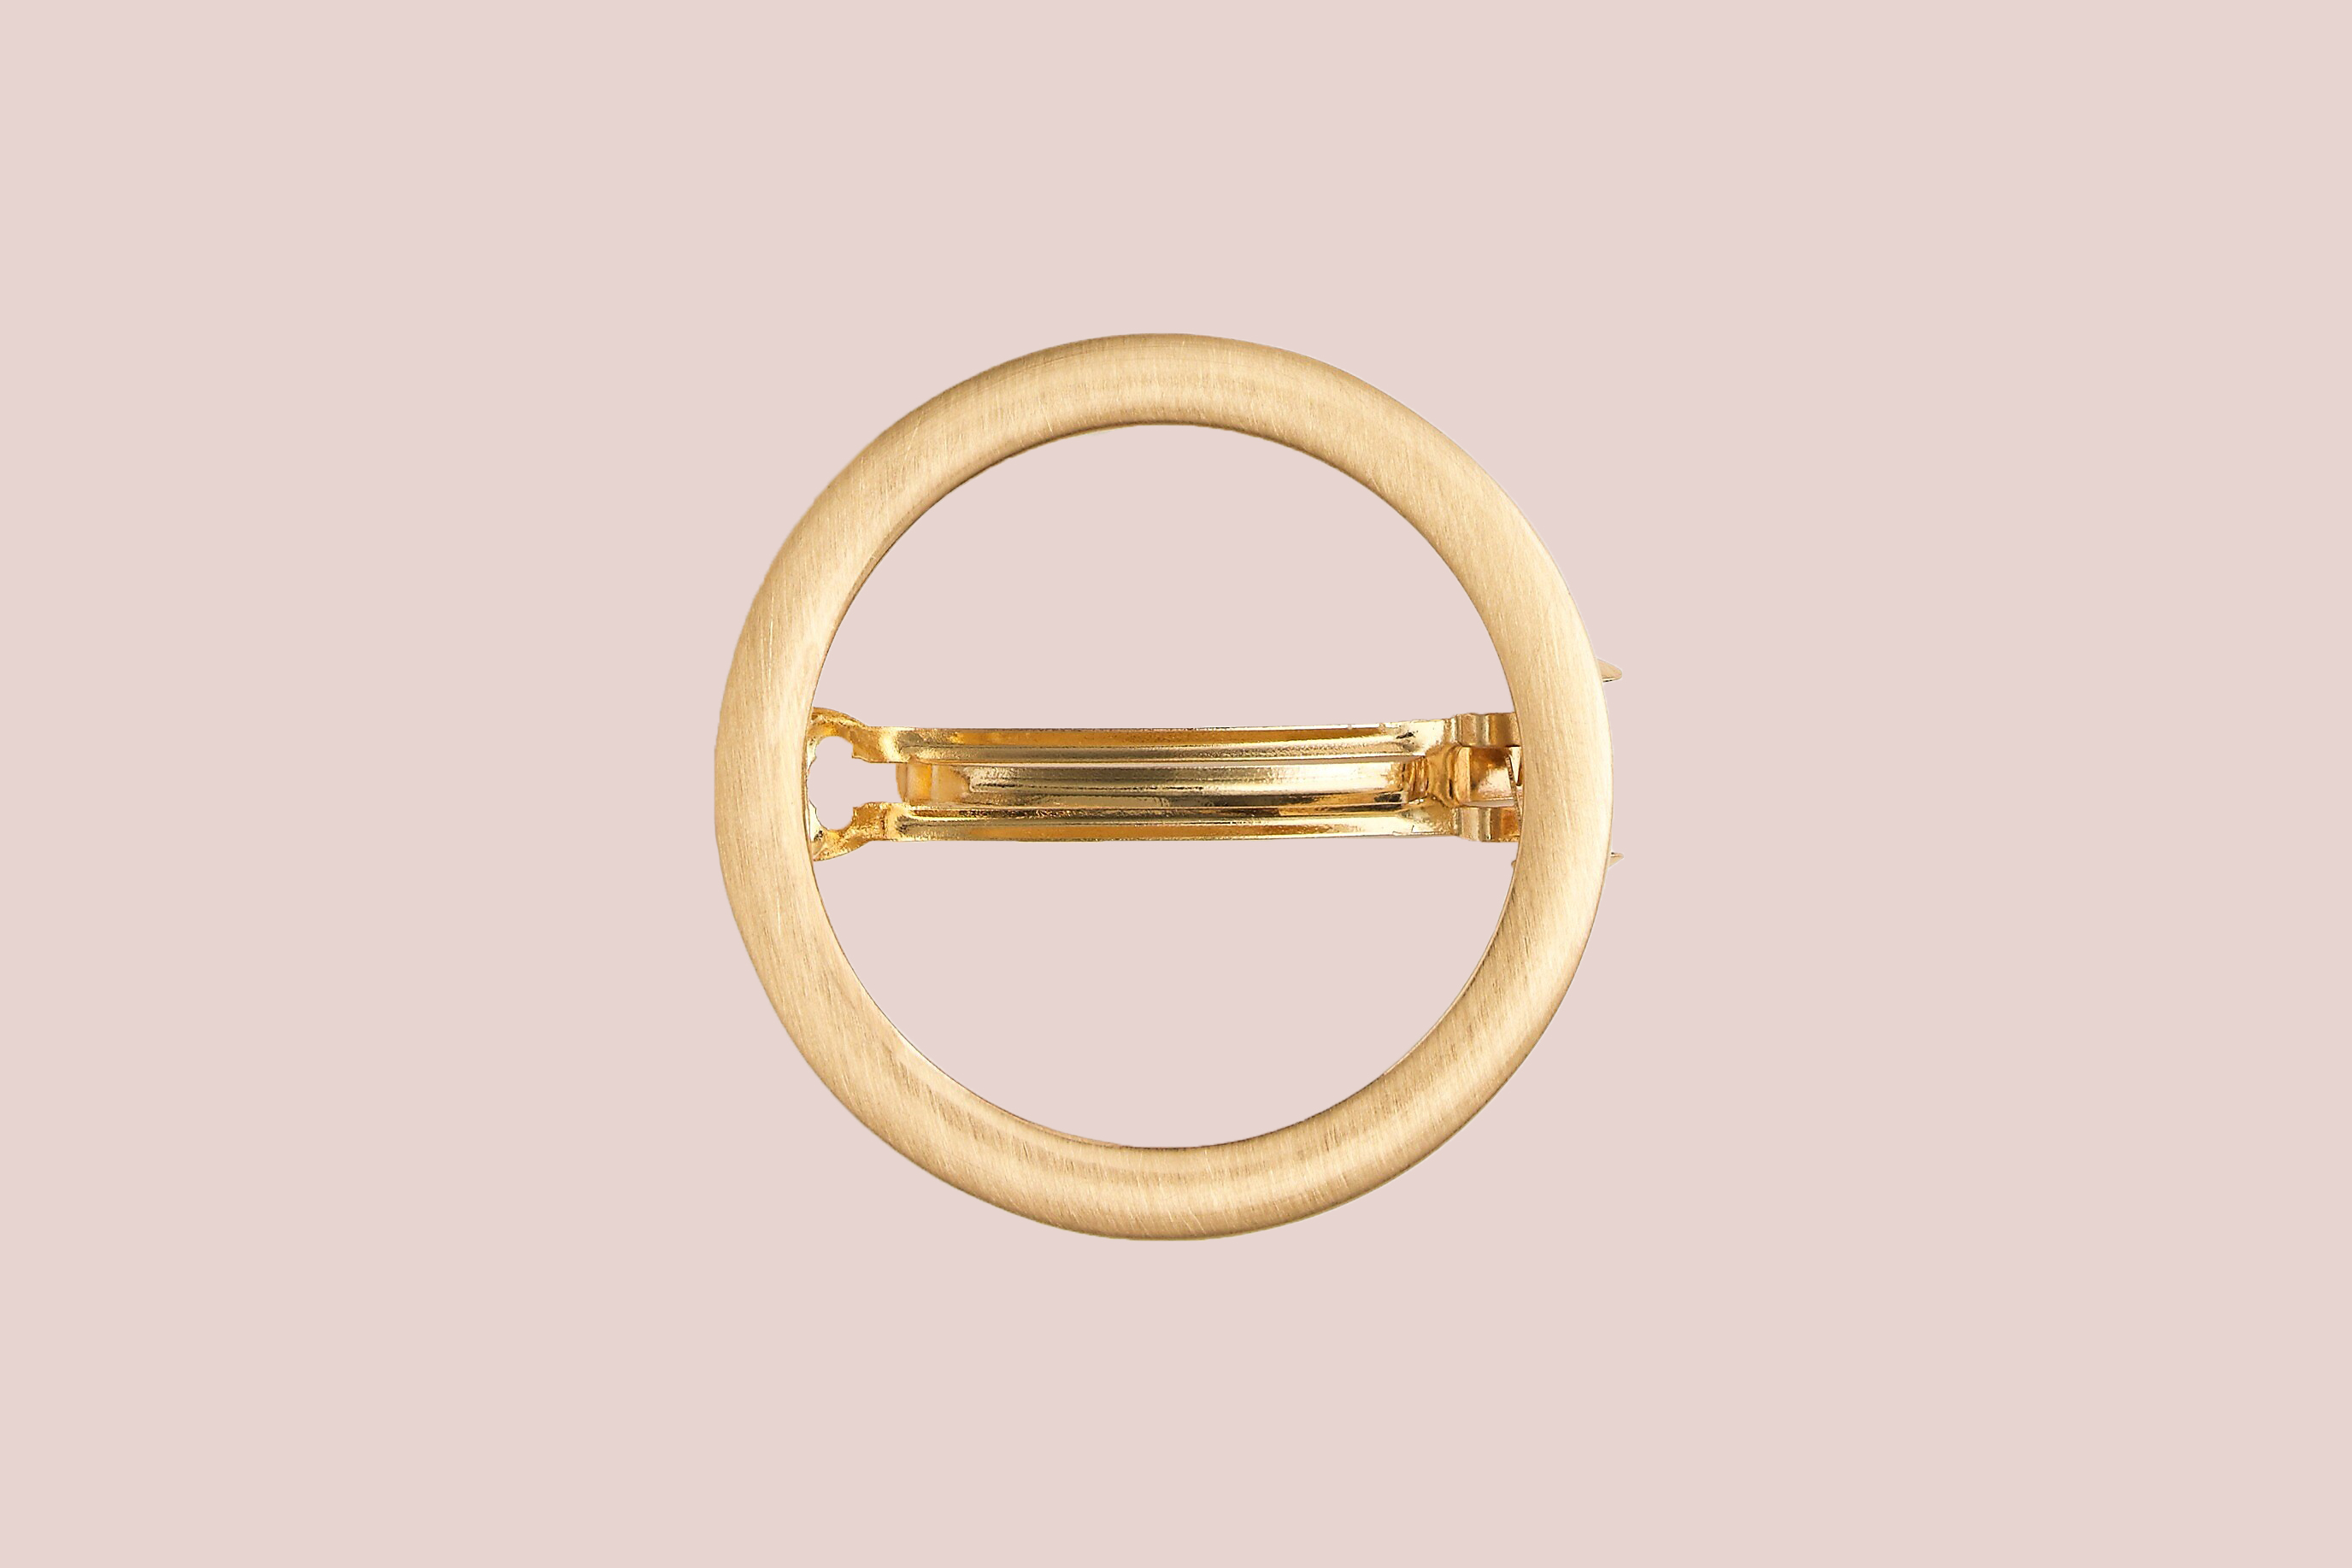 J. Crew Oval Barrette in Brushed Metal